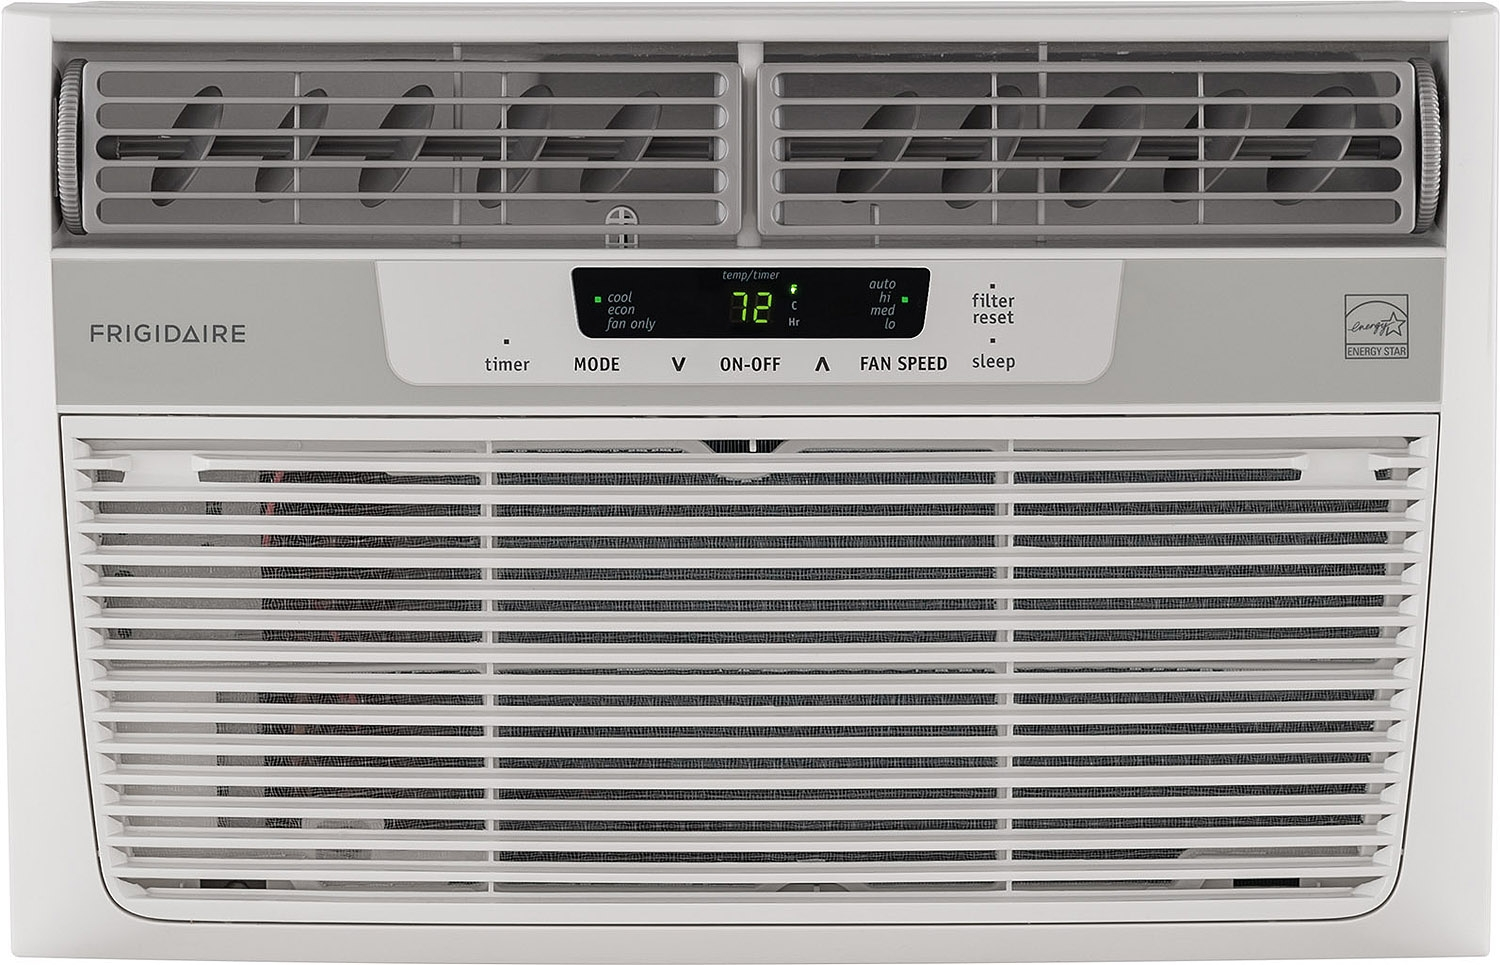 Frigidaire Window Air Conditioner FRA064AT7 #476532